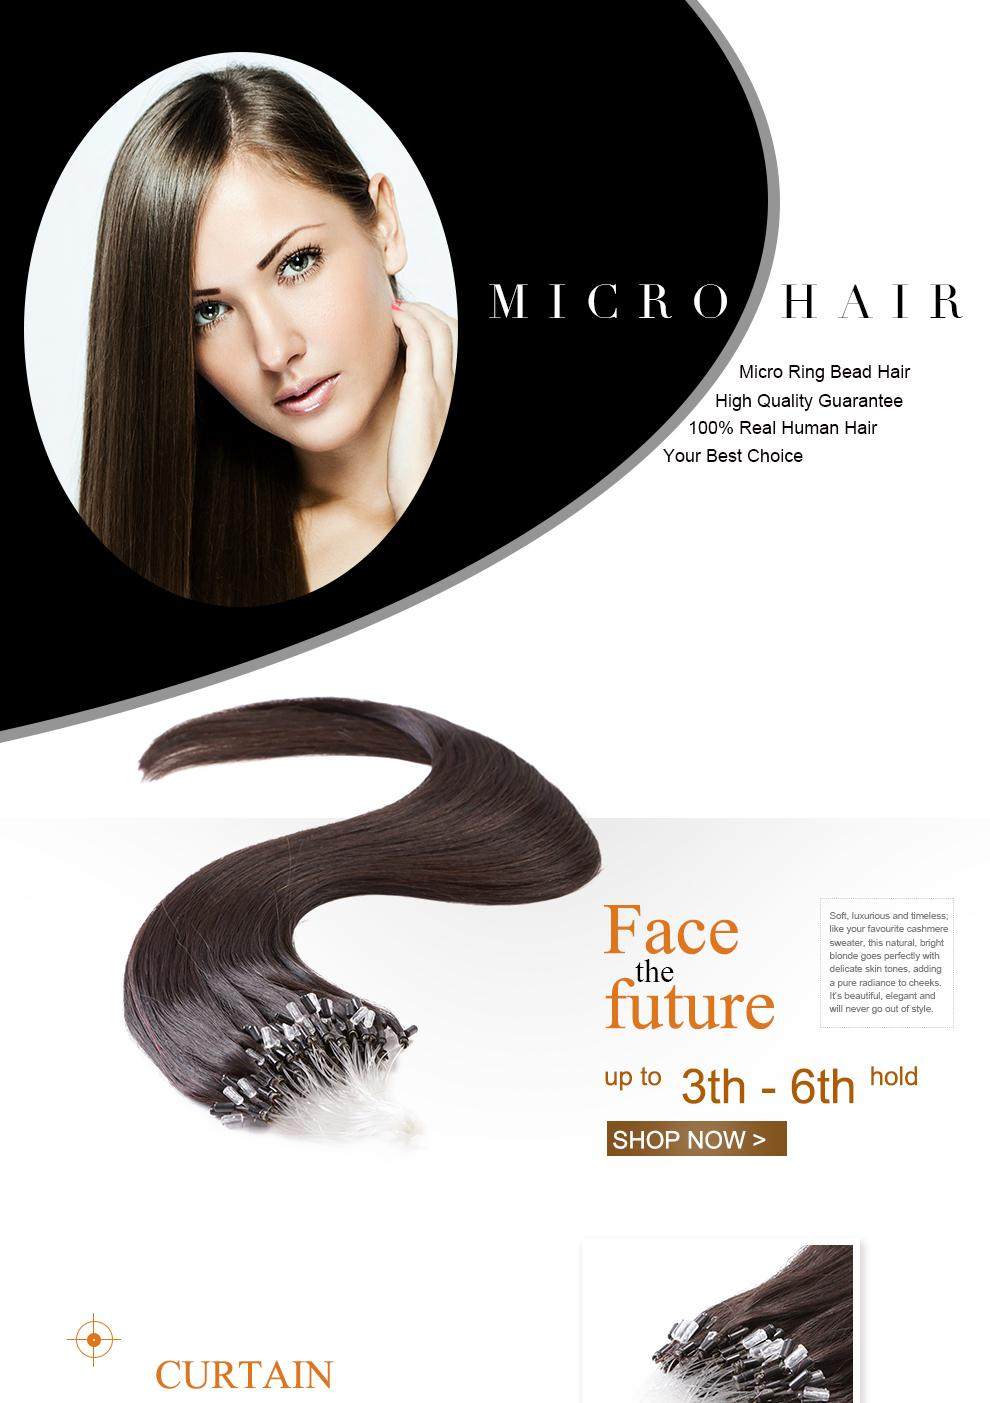 Cheap neitsi 16 20 24 1gs 100g micro loop ring links beads human want to make your hair look long and thick hair extensions micro bead can help you with that here we are providing you the exact micro bead hair pmusecretfo Choice Image